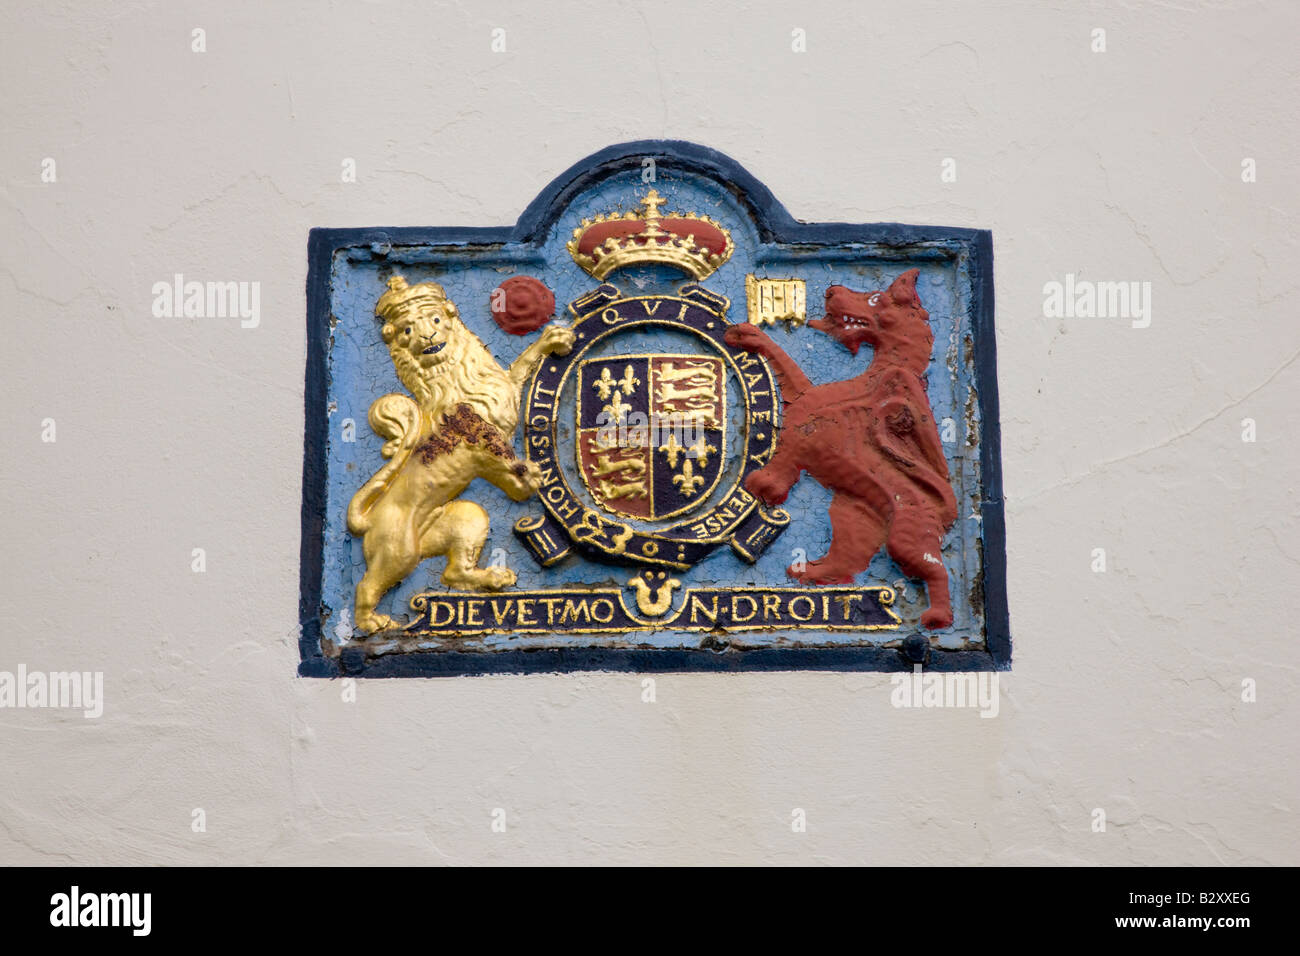 Royal coat of arms in Sandwich Kent - Stock Image